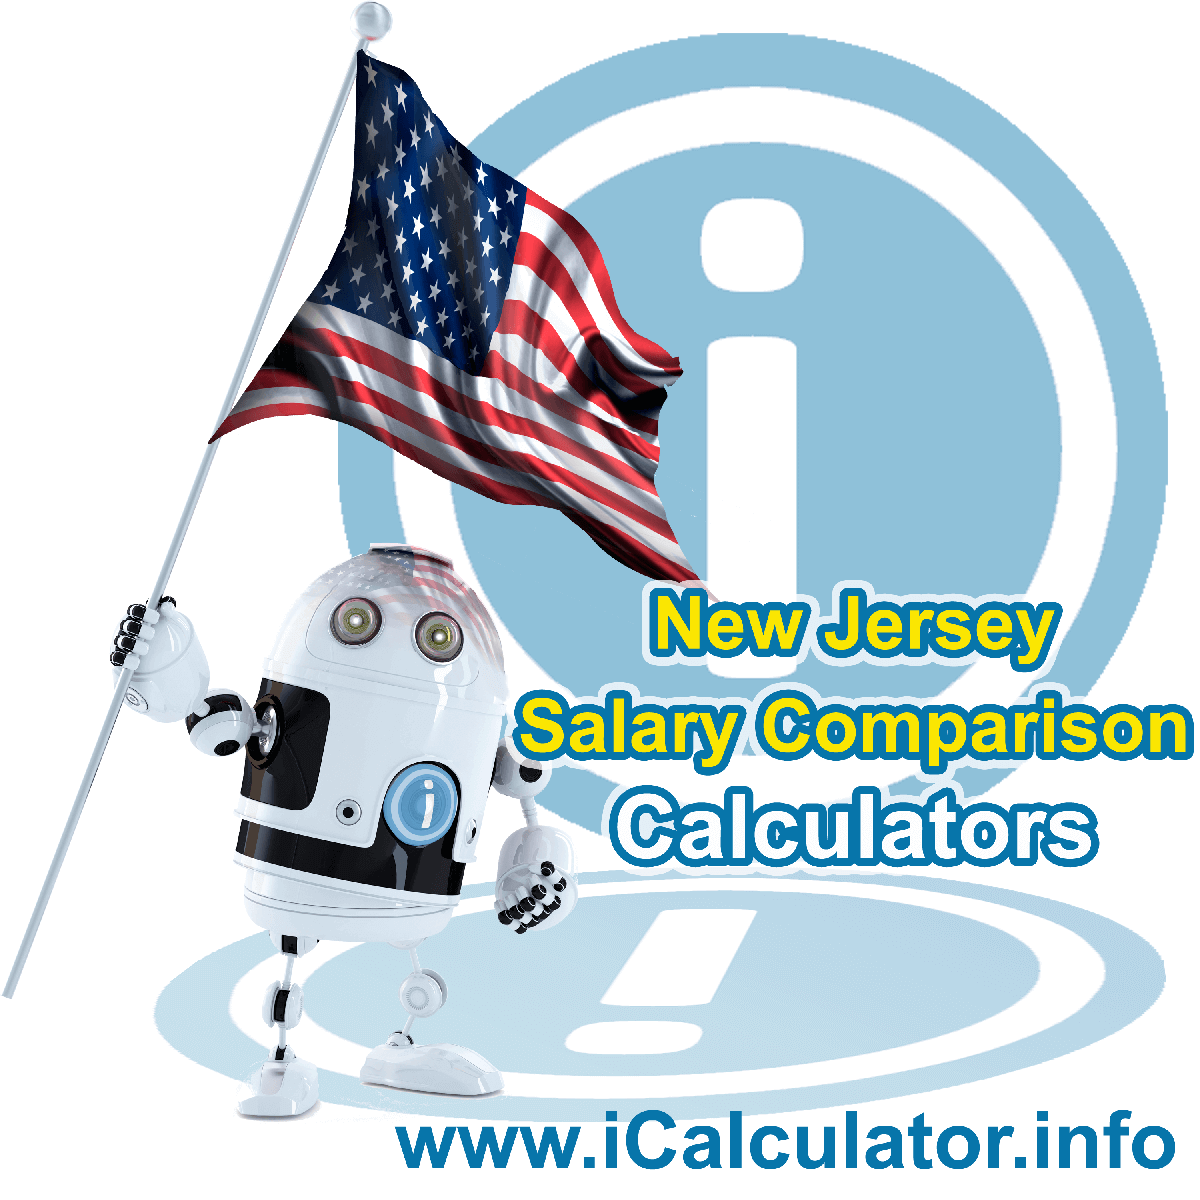 New Jersey Salary Comparison Calculator 2020 | iCalculator | The New Jersey Salary Comparison Calculator allows you to quickly calculate and compare upto 6 salaries in New Jersey or between other states for the 2020 tax year and historical tax years. Its an excellent tool for jobseekers, pay raise comparison and comparison of salaries between different US States